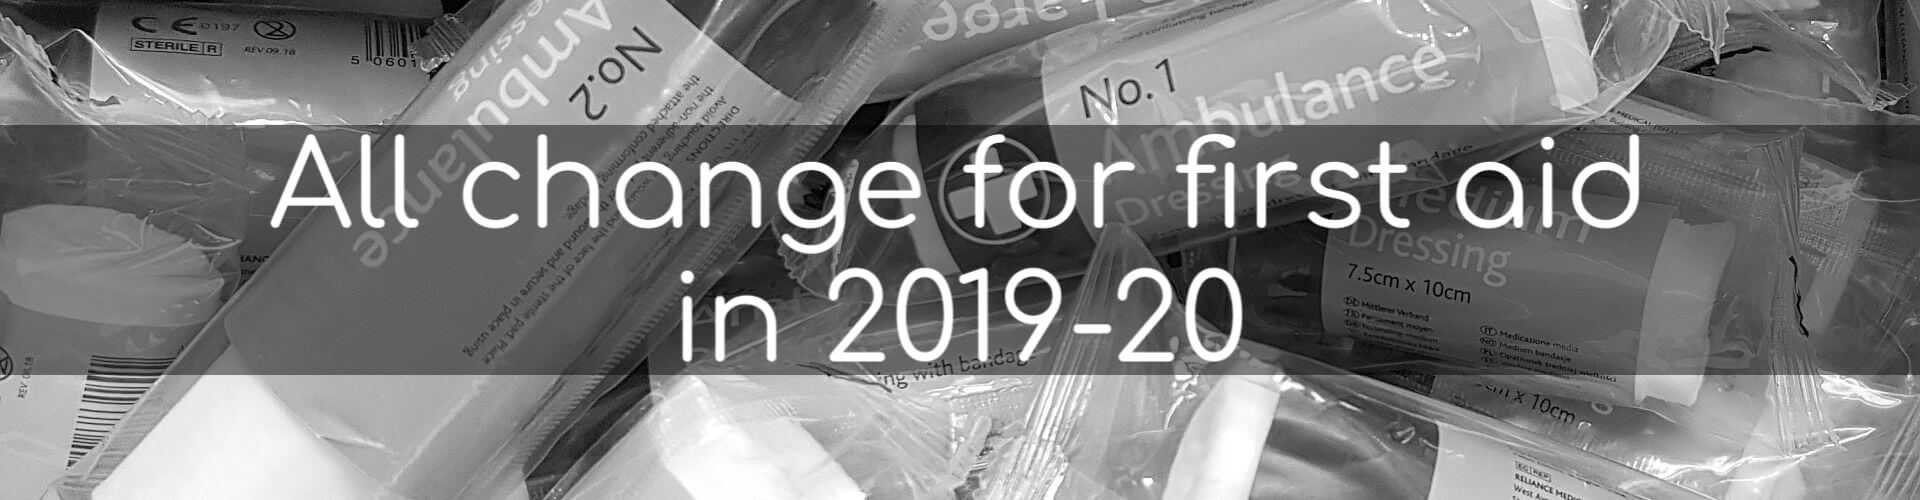 All change for first aid in 2019-20 - Image of bandages